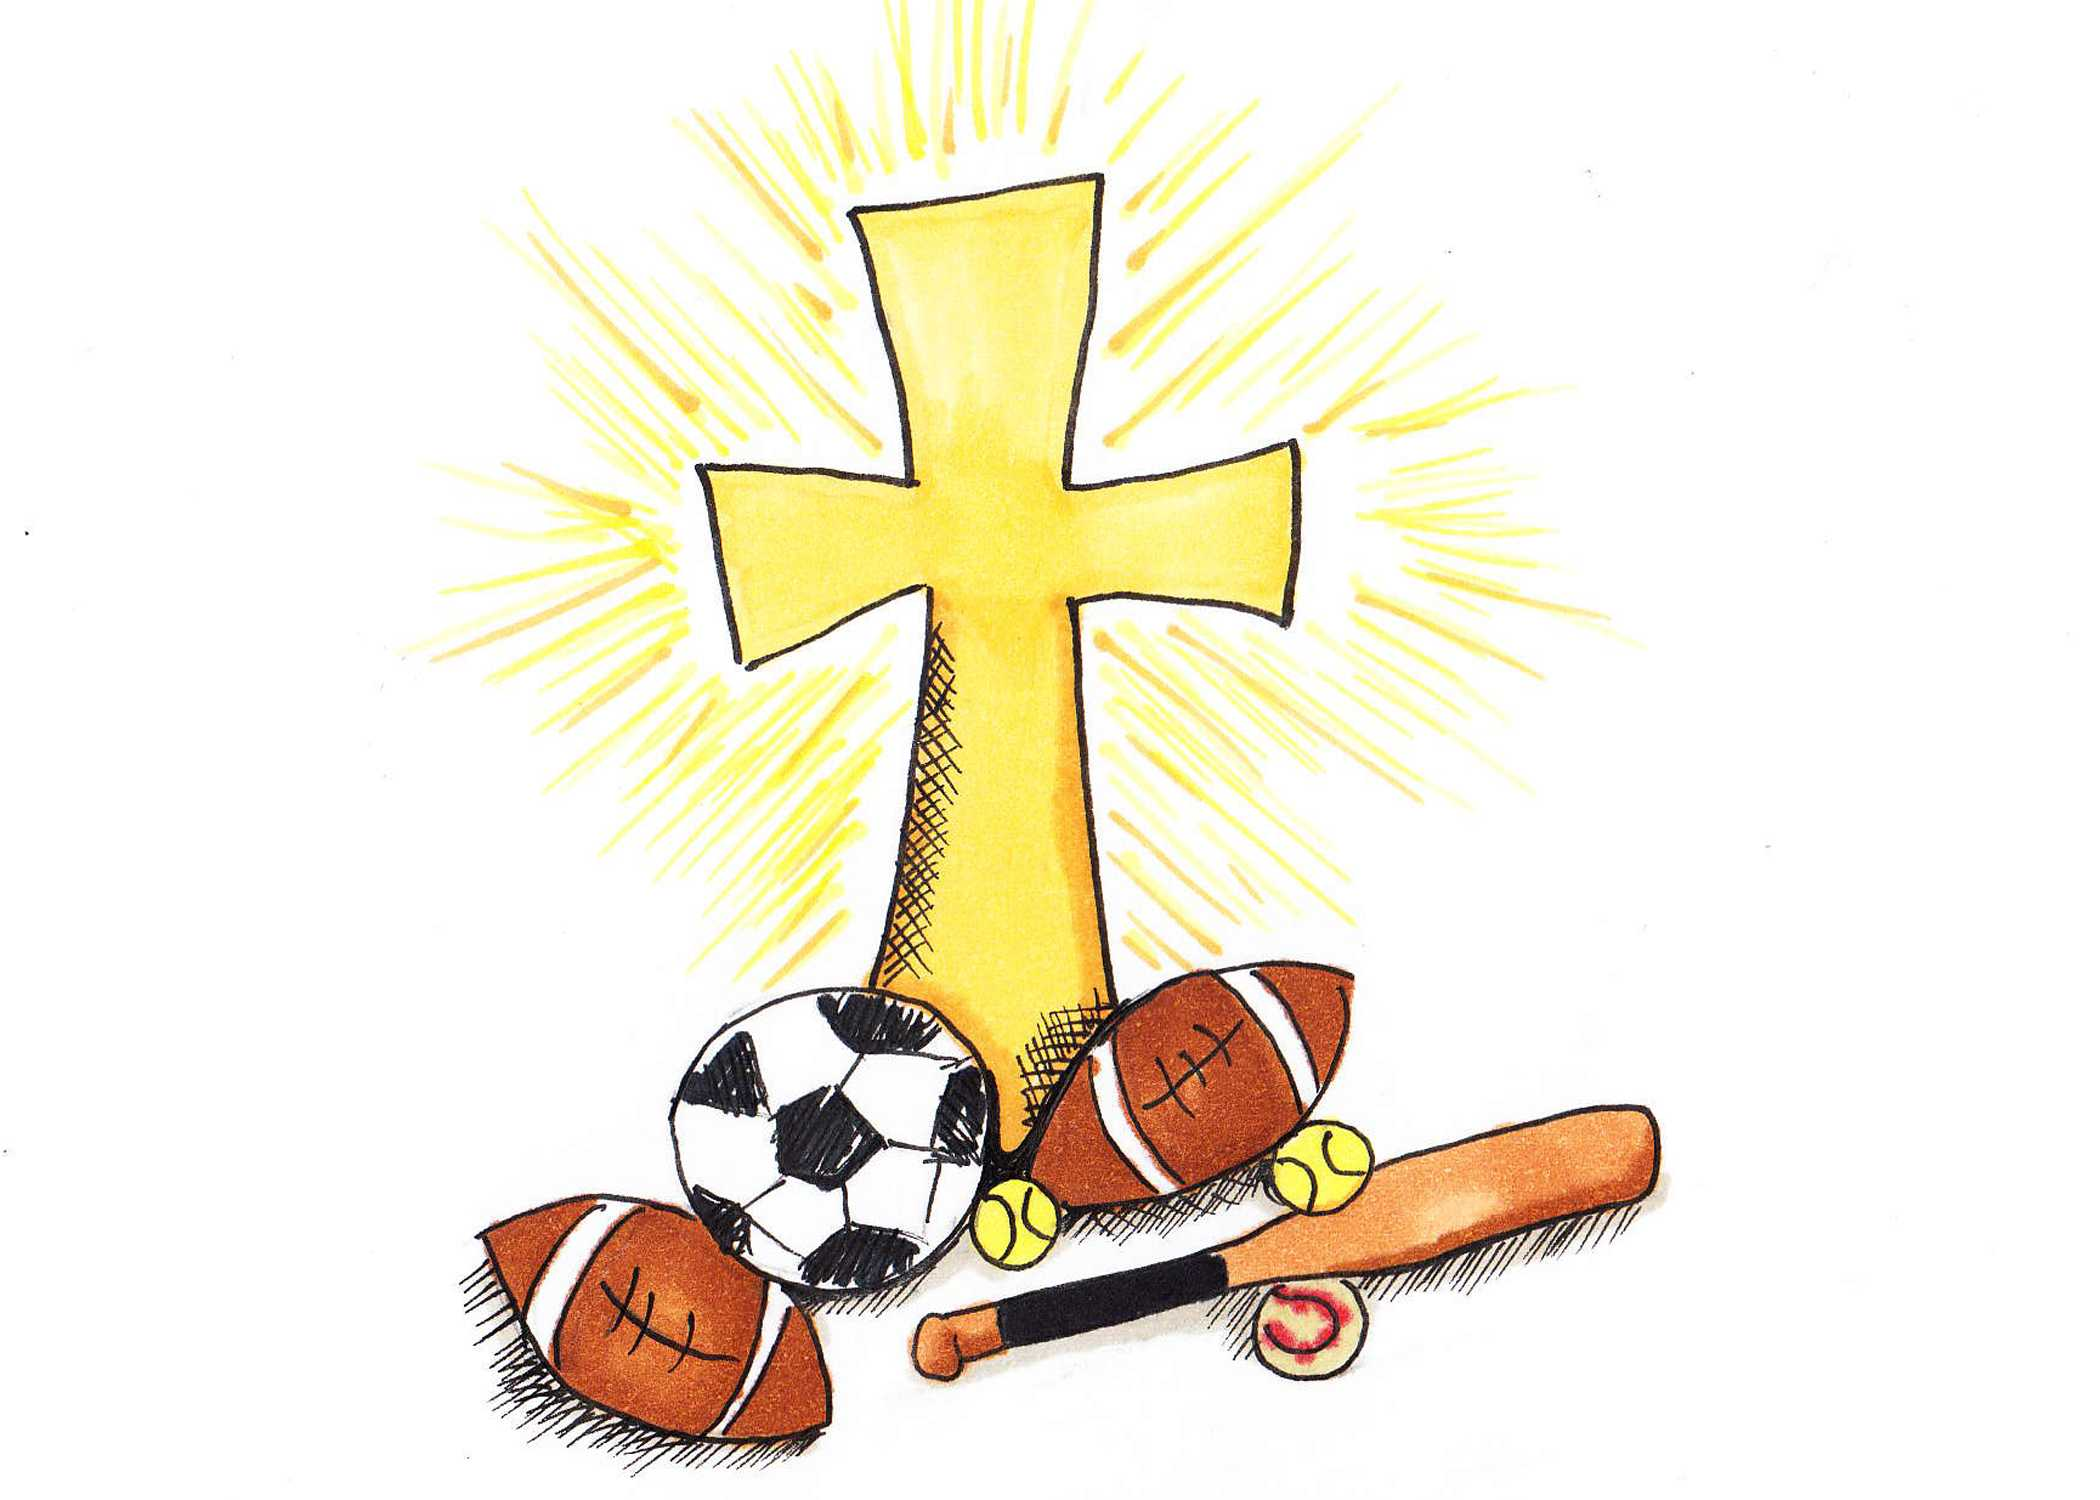 Opinion writer William Flannery writes that the separation of church and state trumps the freedom of religion in the case of praying on the field. Credit: Jessie Snyder/The Foothill Dragon Press